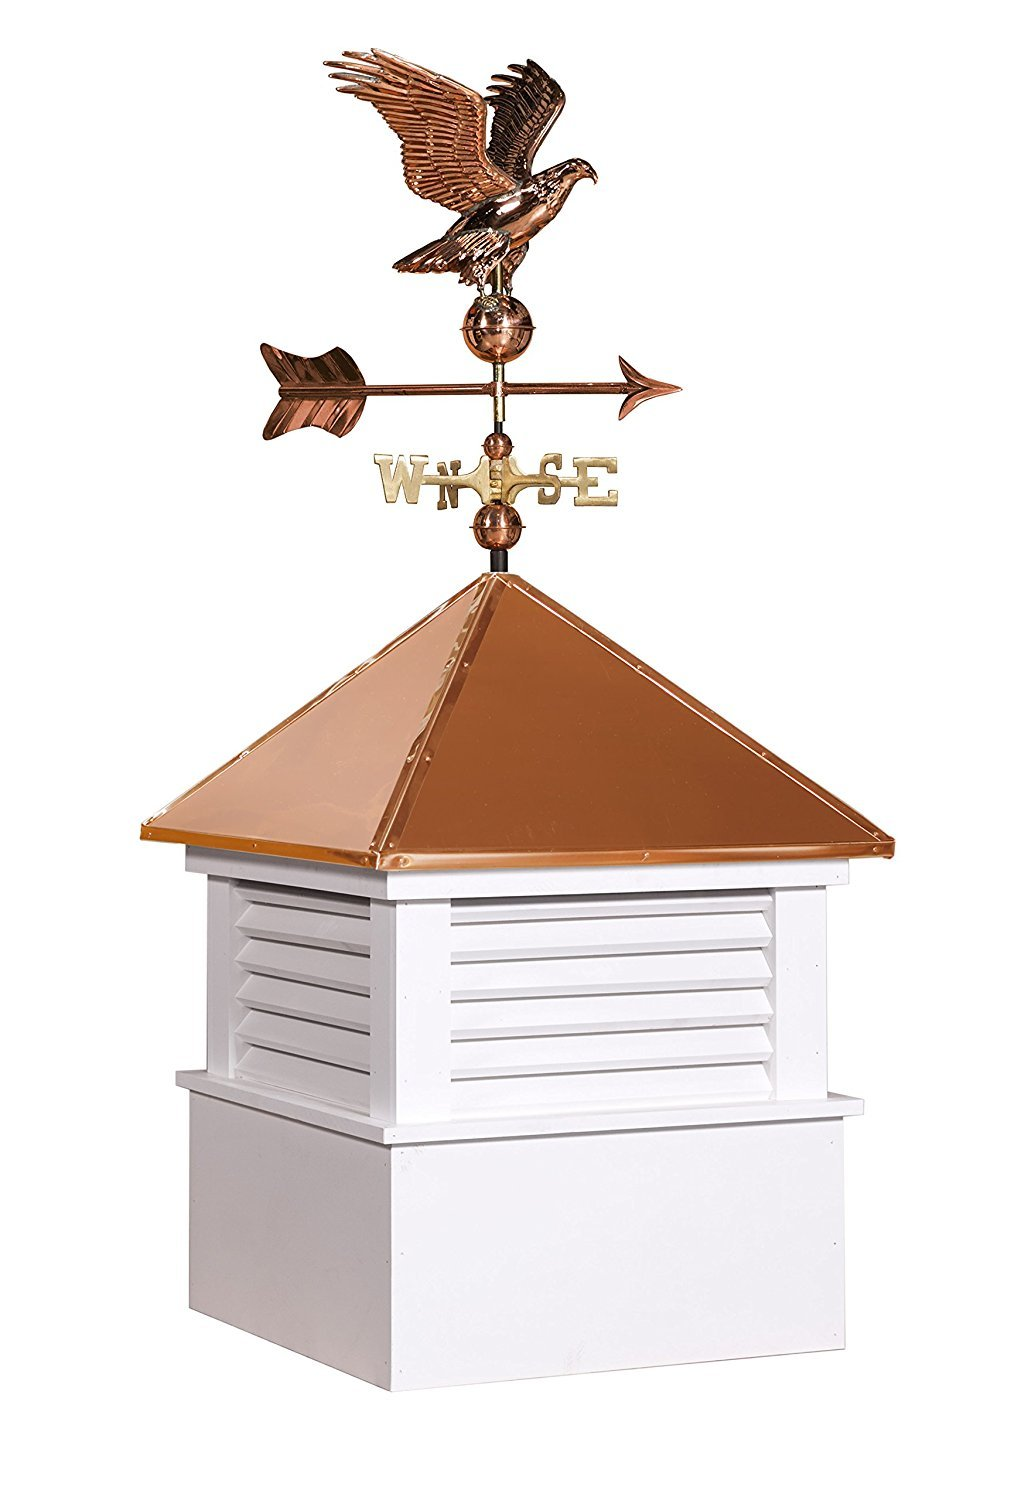 East Coast Weathervanes and Cupolas Vinyl Douglas Cupola With Eagle Weathervane (vinyl, 25 in square x 56 in tall)